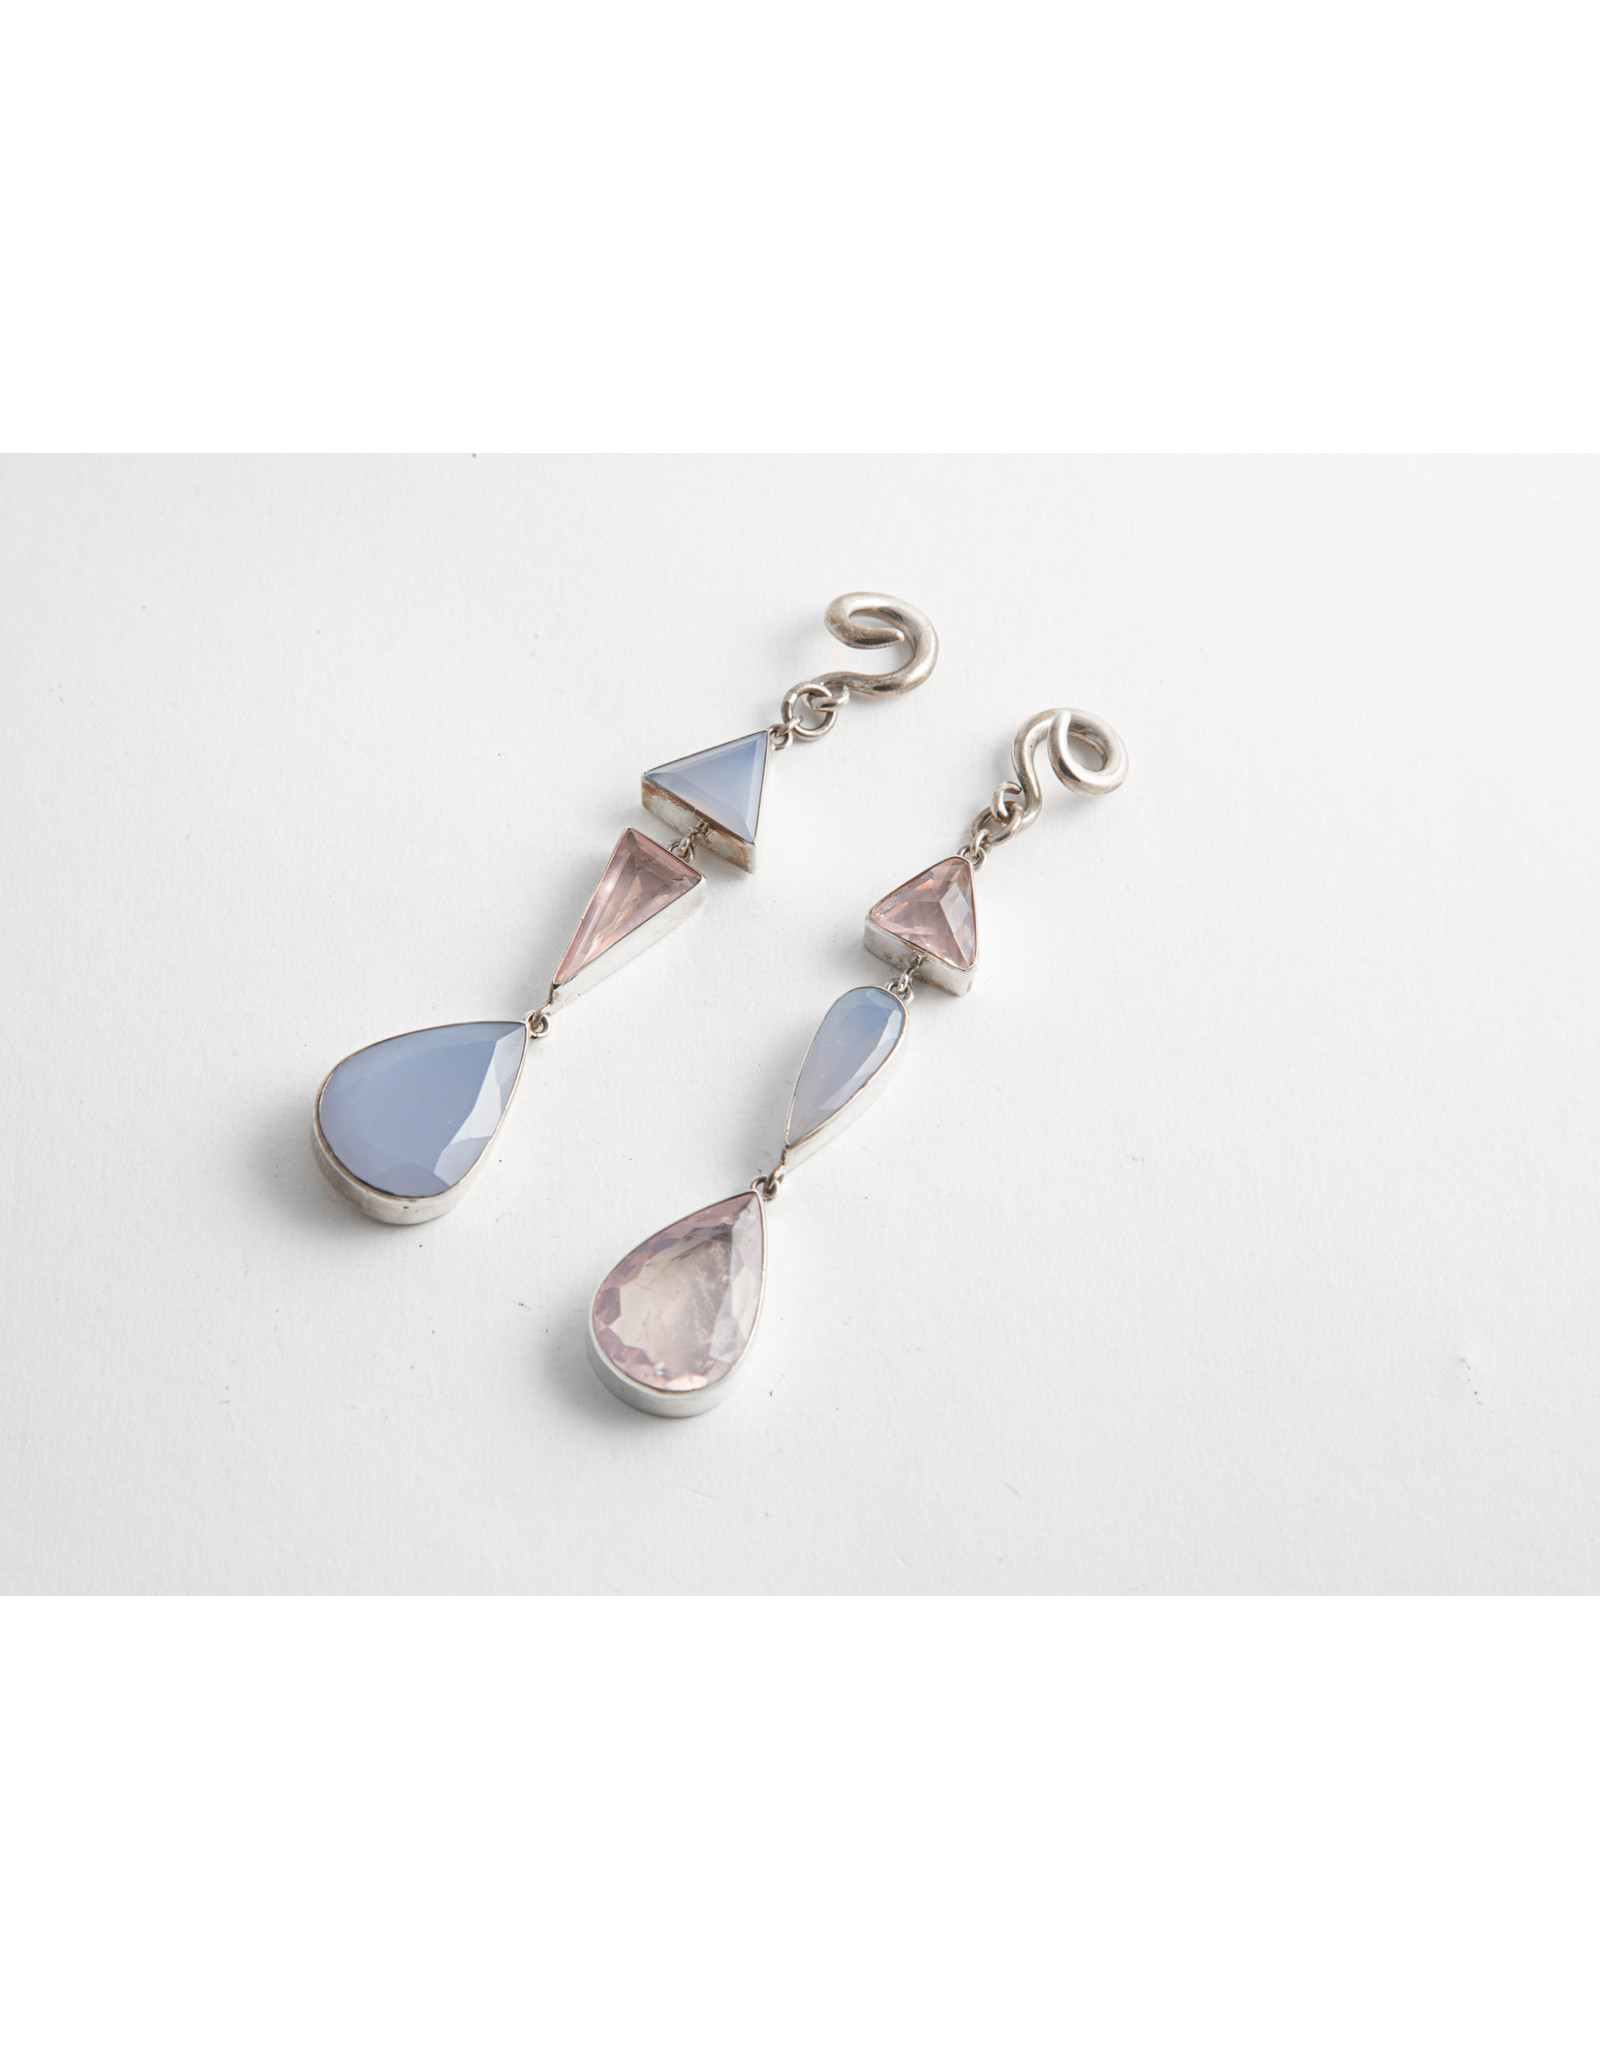 Diablo Organics Diablo Organics silver-set asymmetrical triple dangle with blue chalcedony and rose quartz on small classic coil